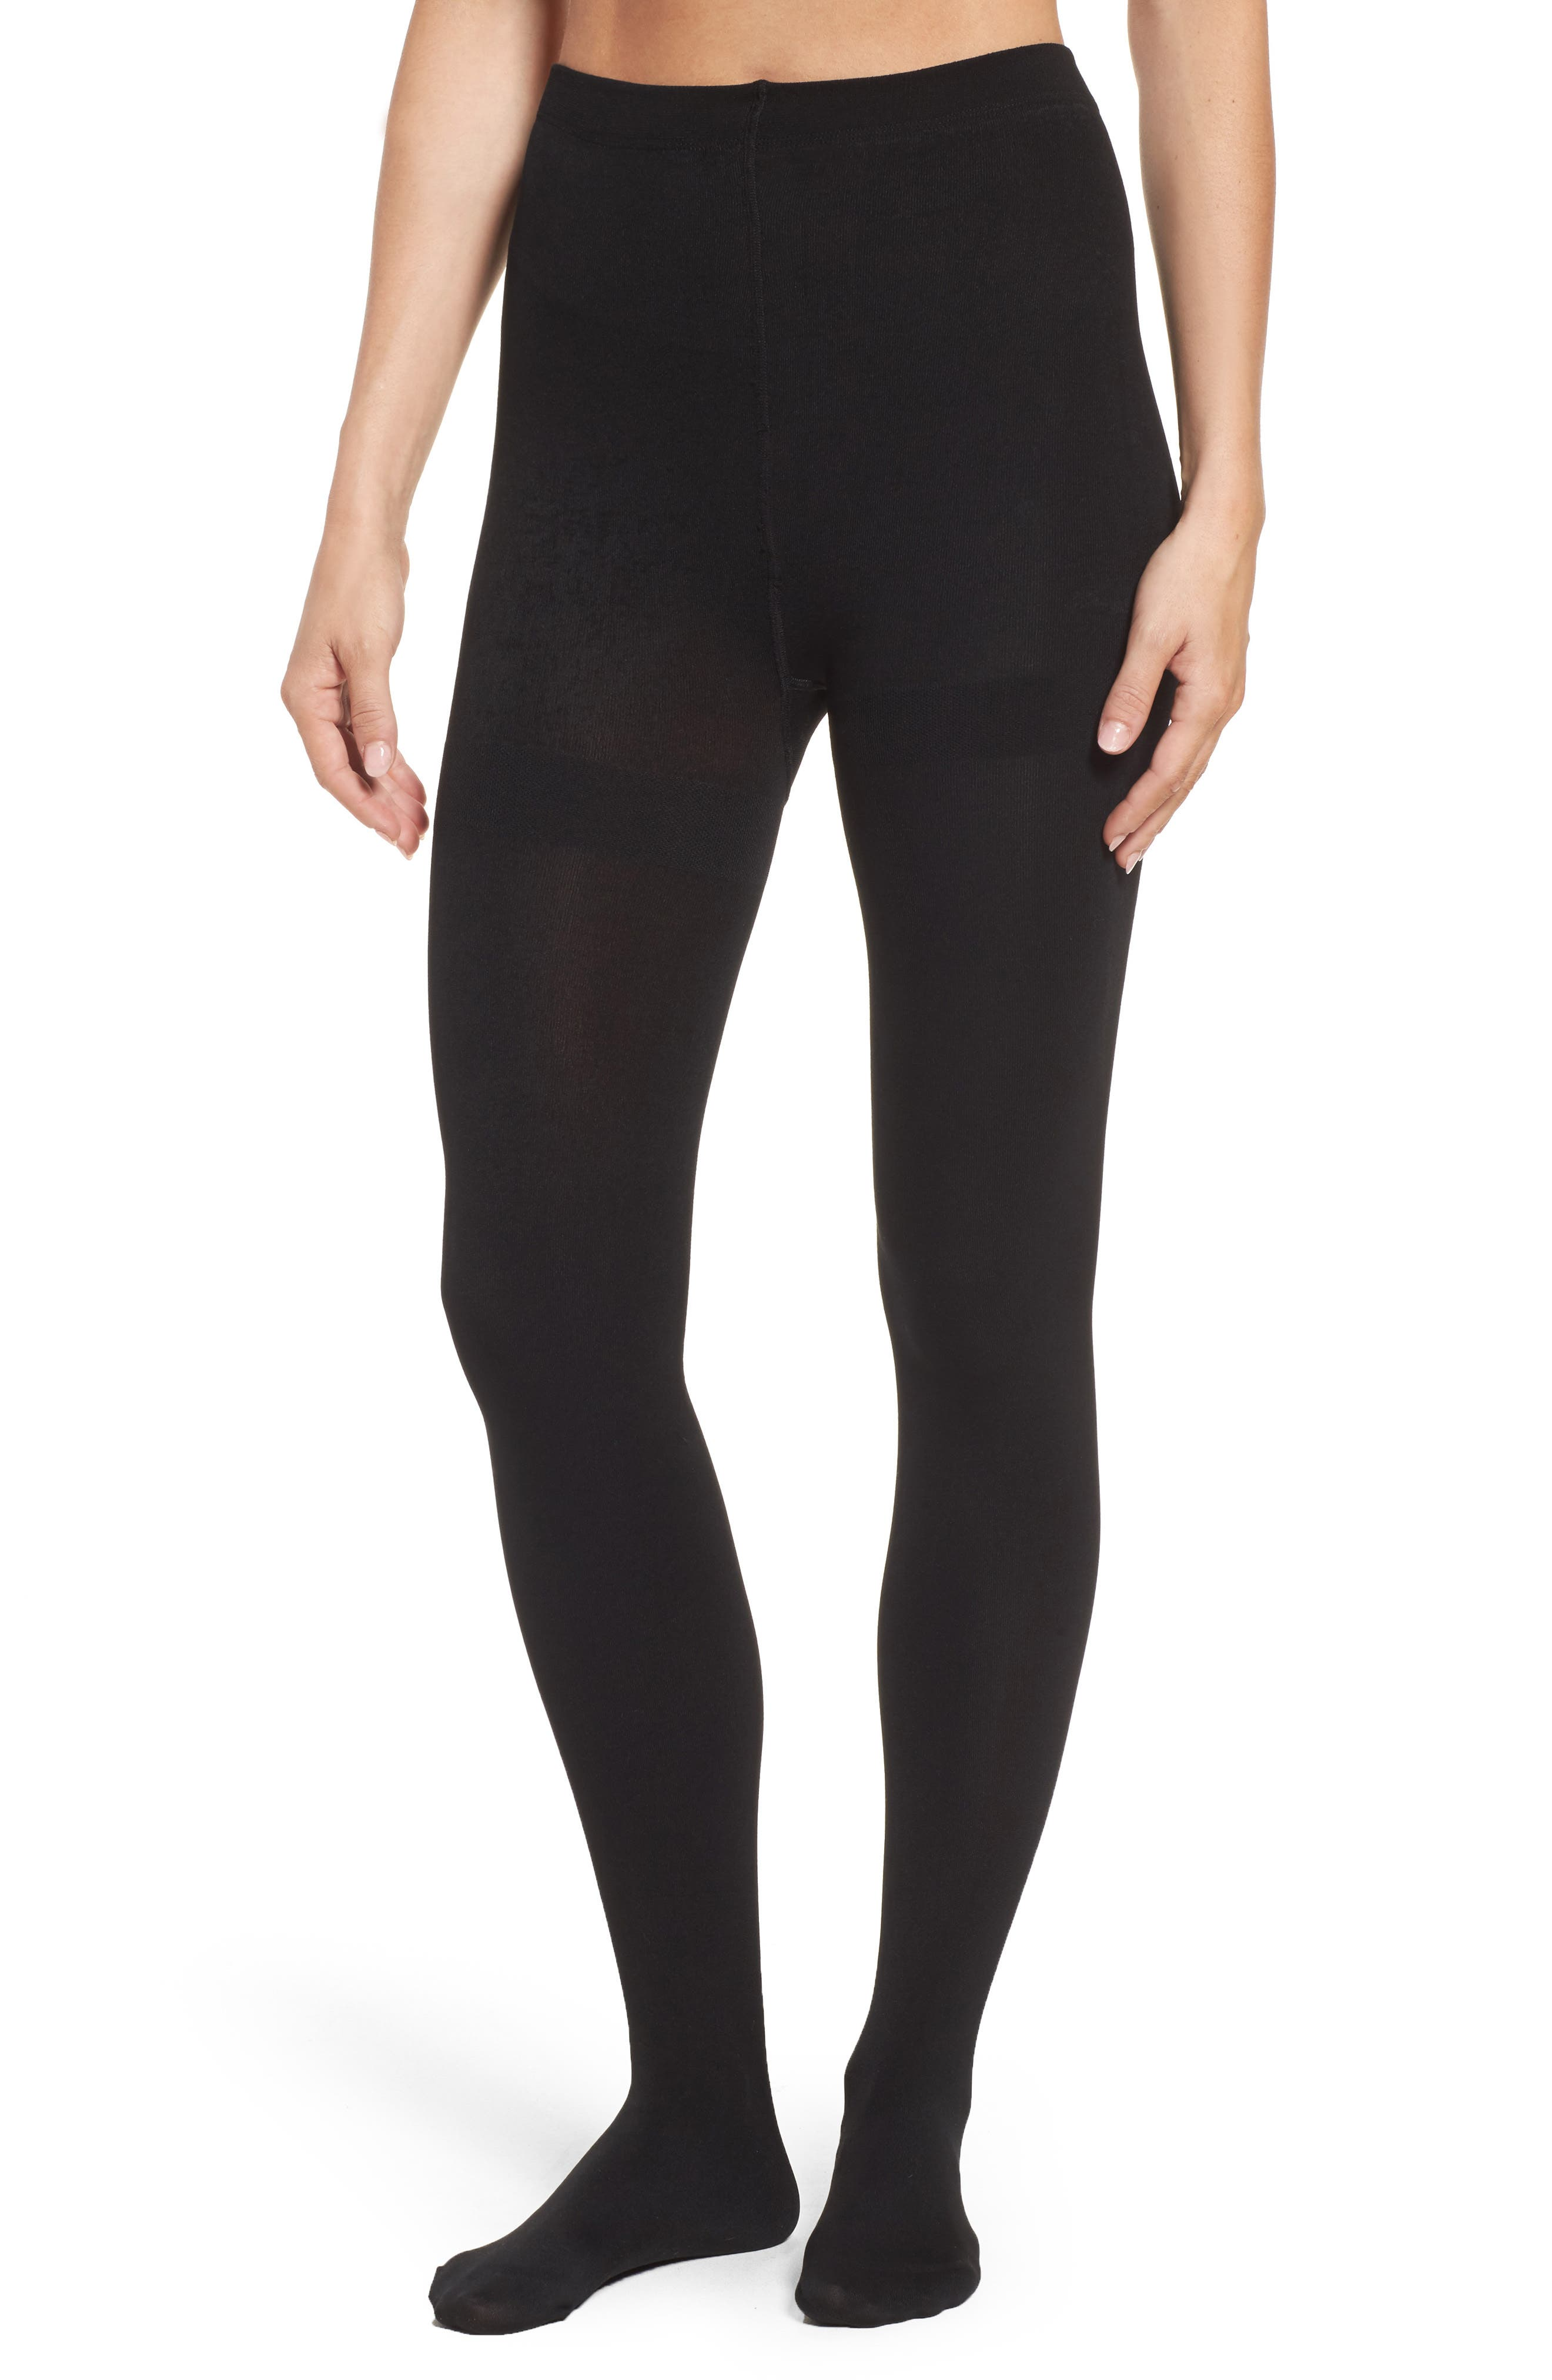 Alternate Image 1 Selected - Nordstrom Fleece Lined Tights